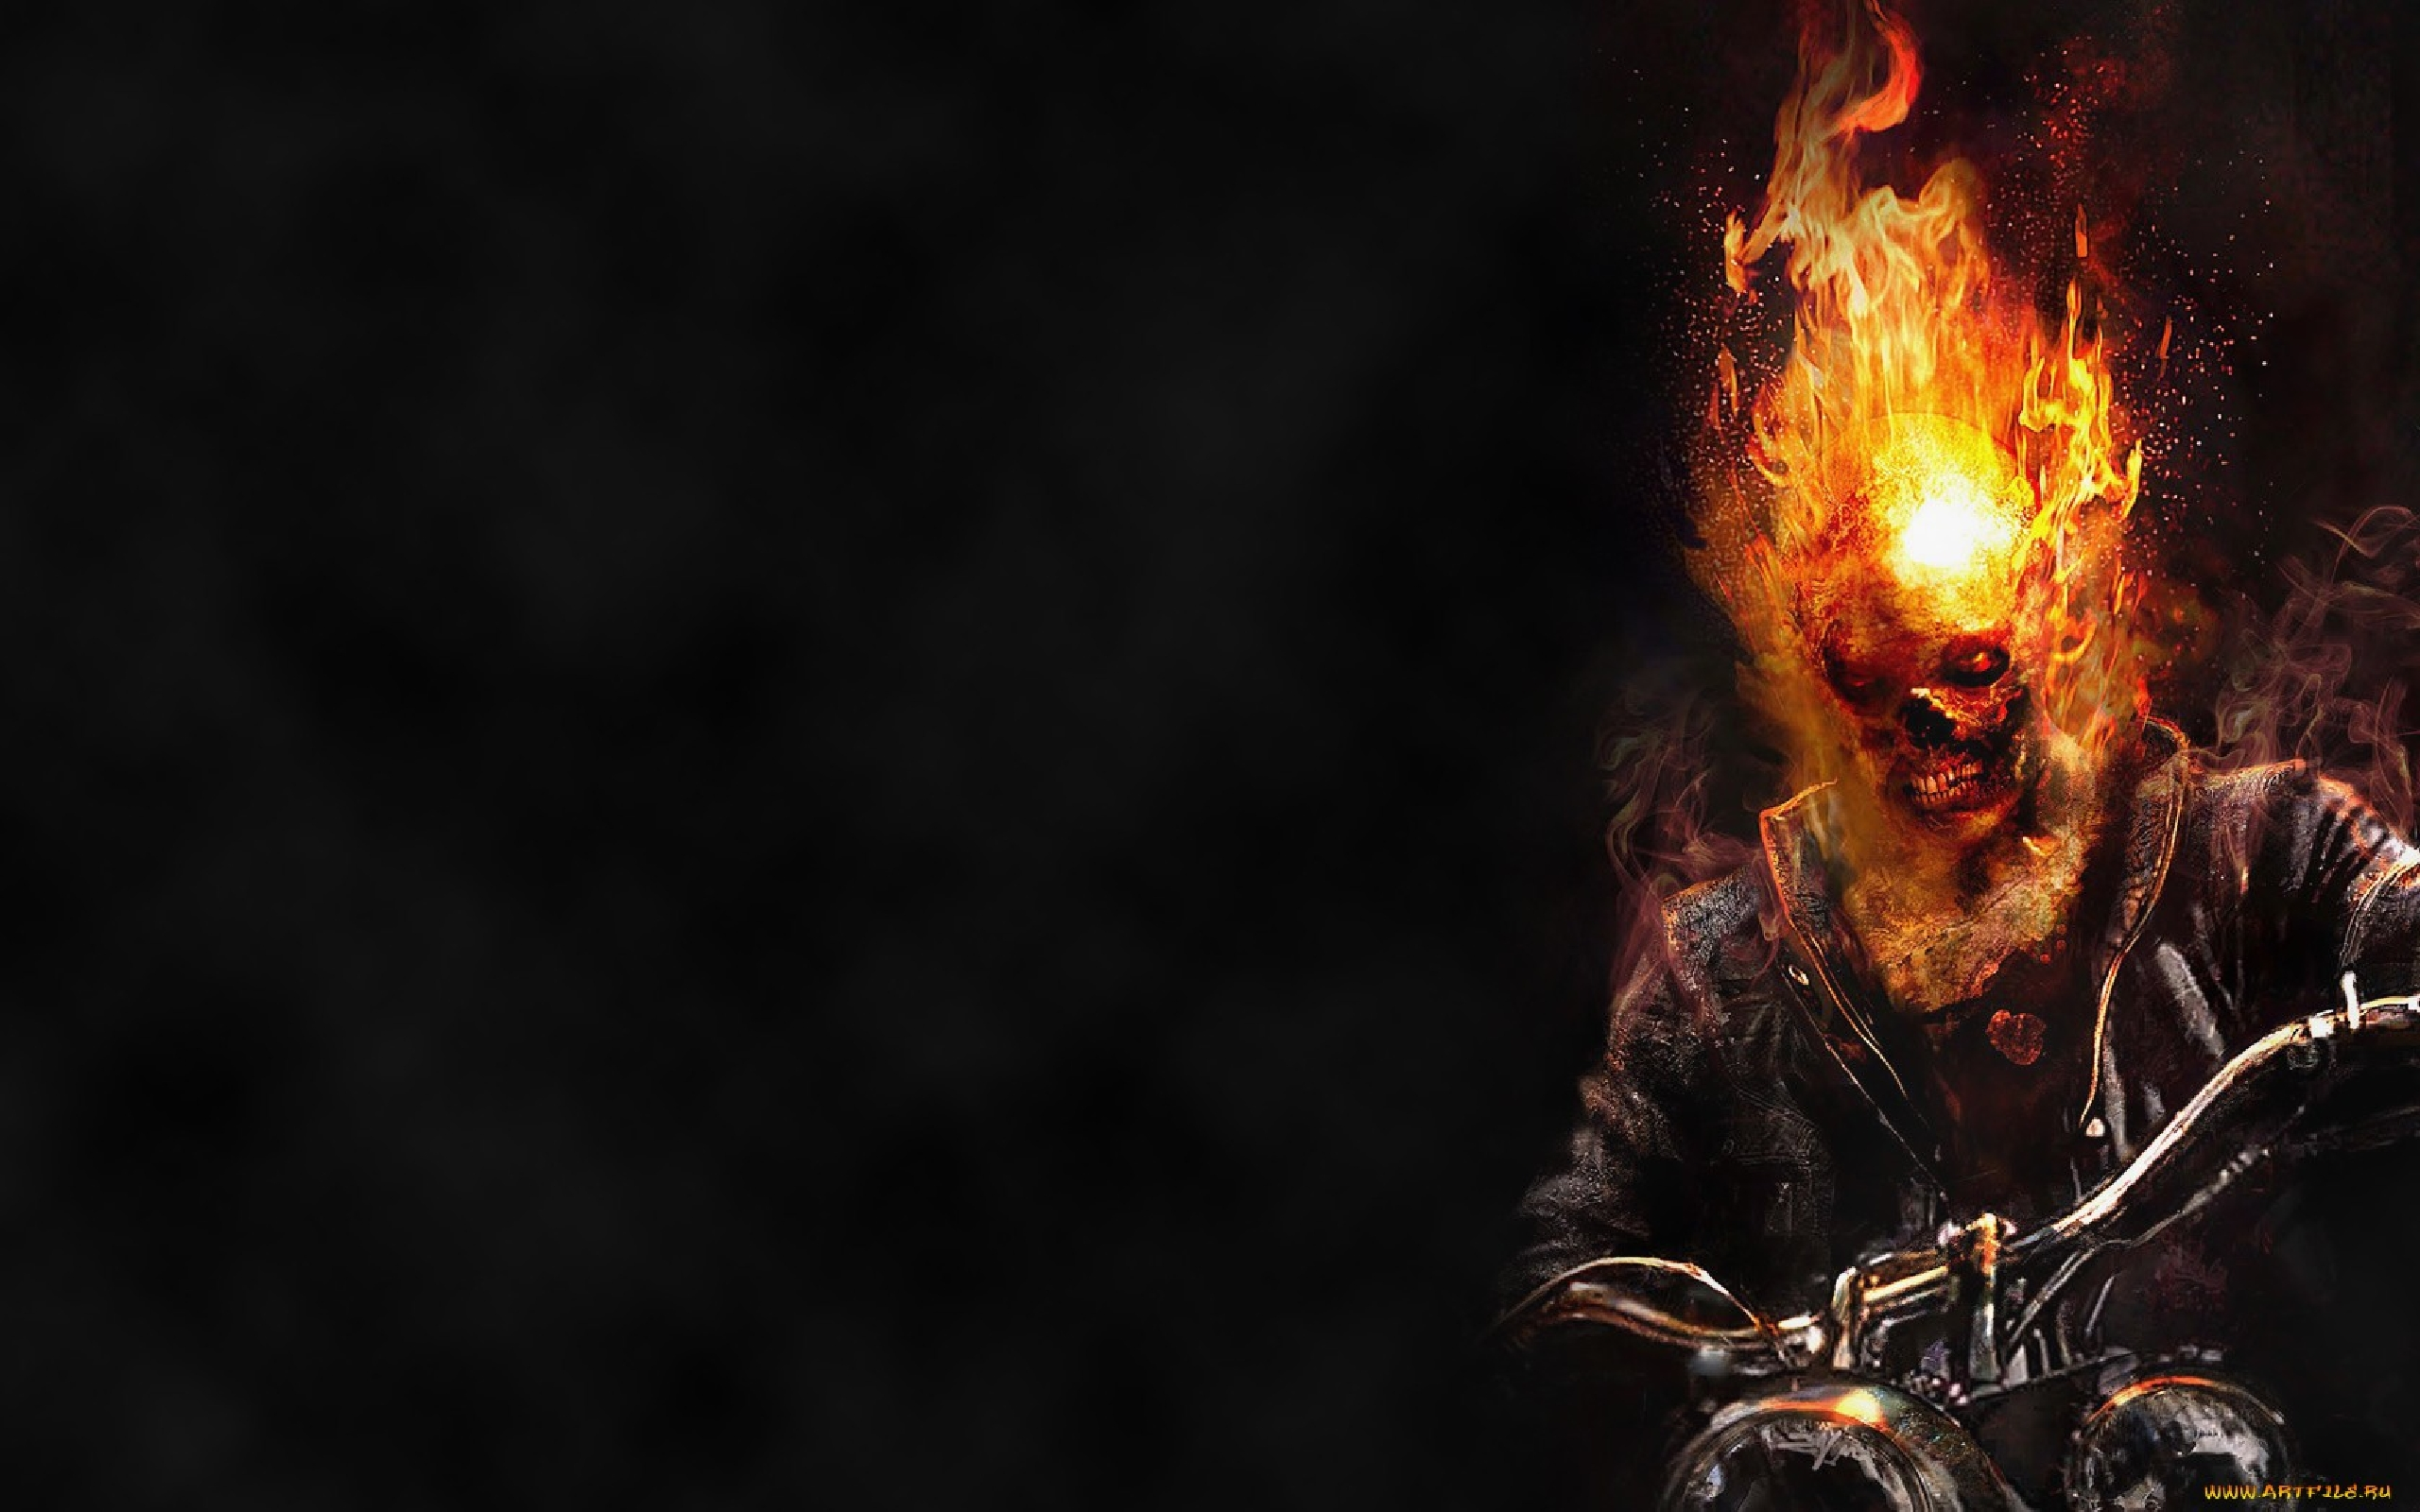 Ghost Rider Computer Wallpapers Desktop Backgrounds 2560x1600 ID 2560x1600